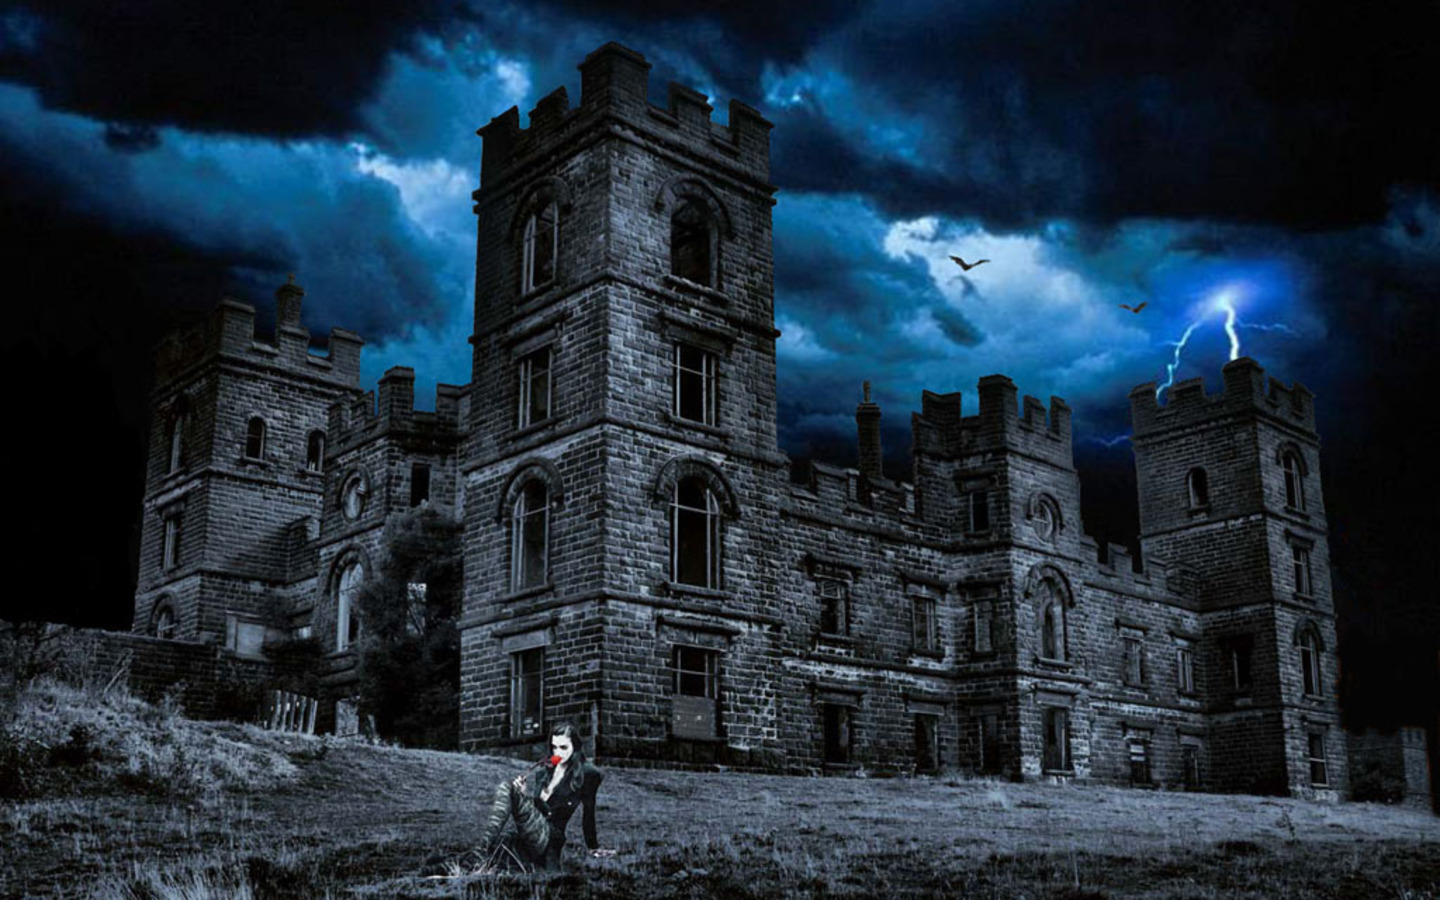 Horror Ghost Houses wallpapers HQ image size 1440x900 PIXHOME 1440x900